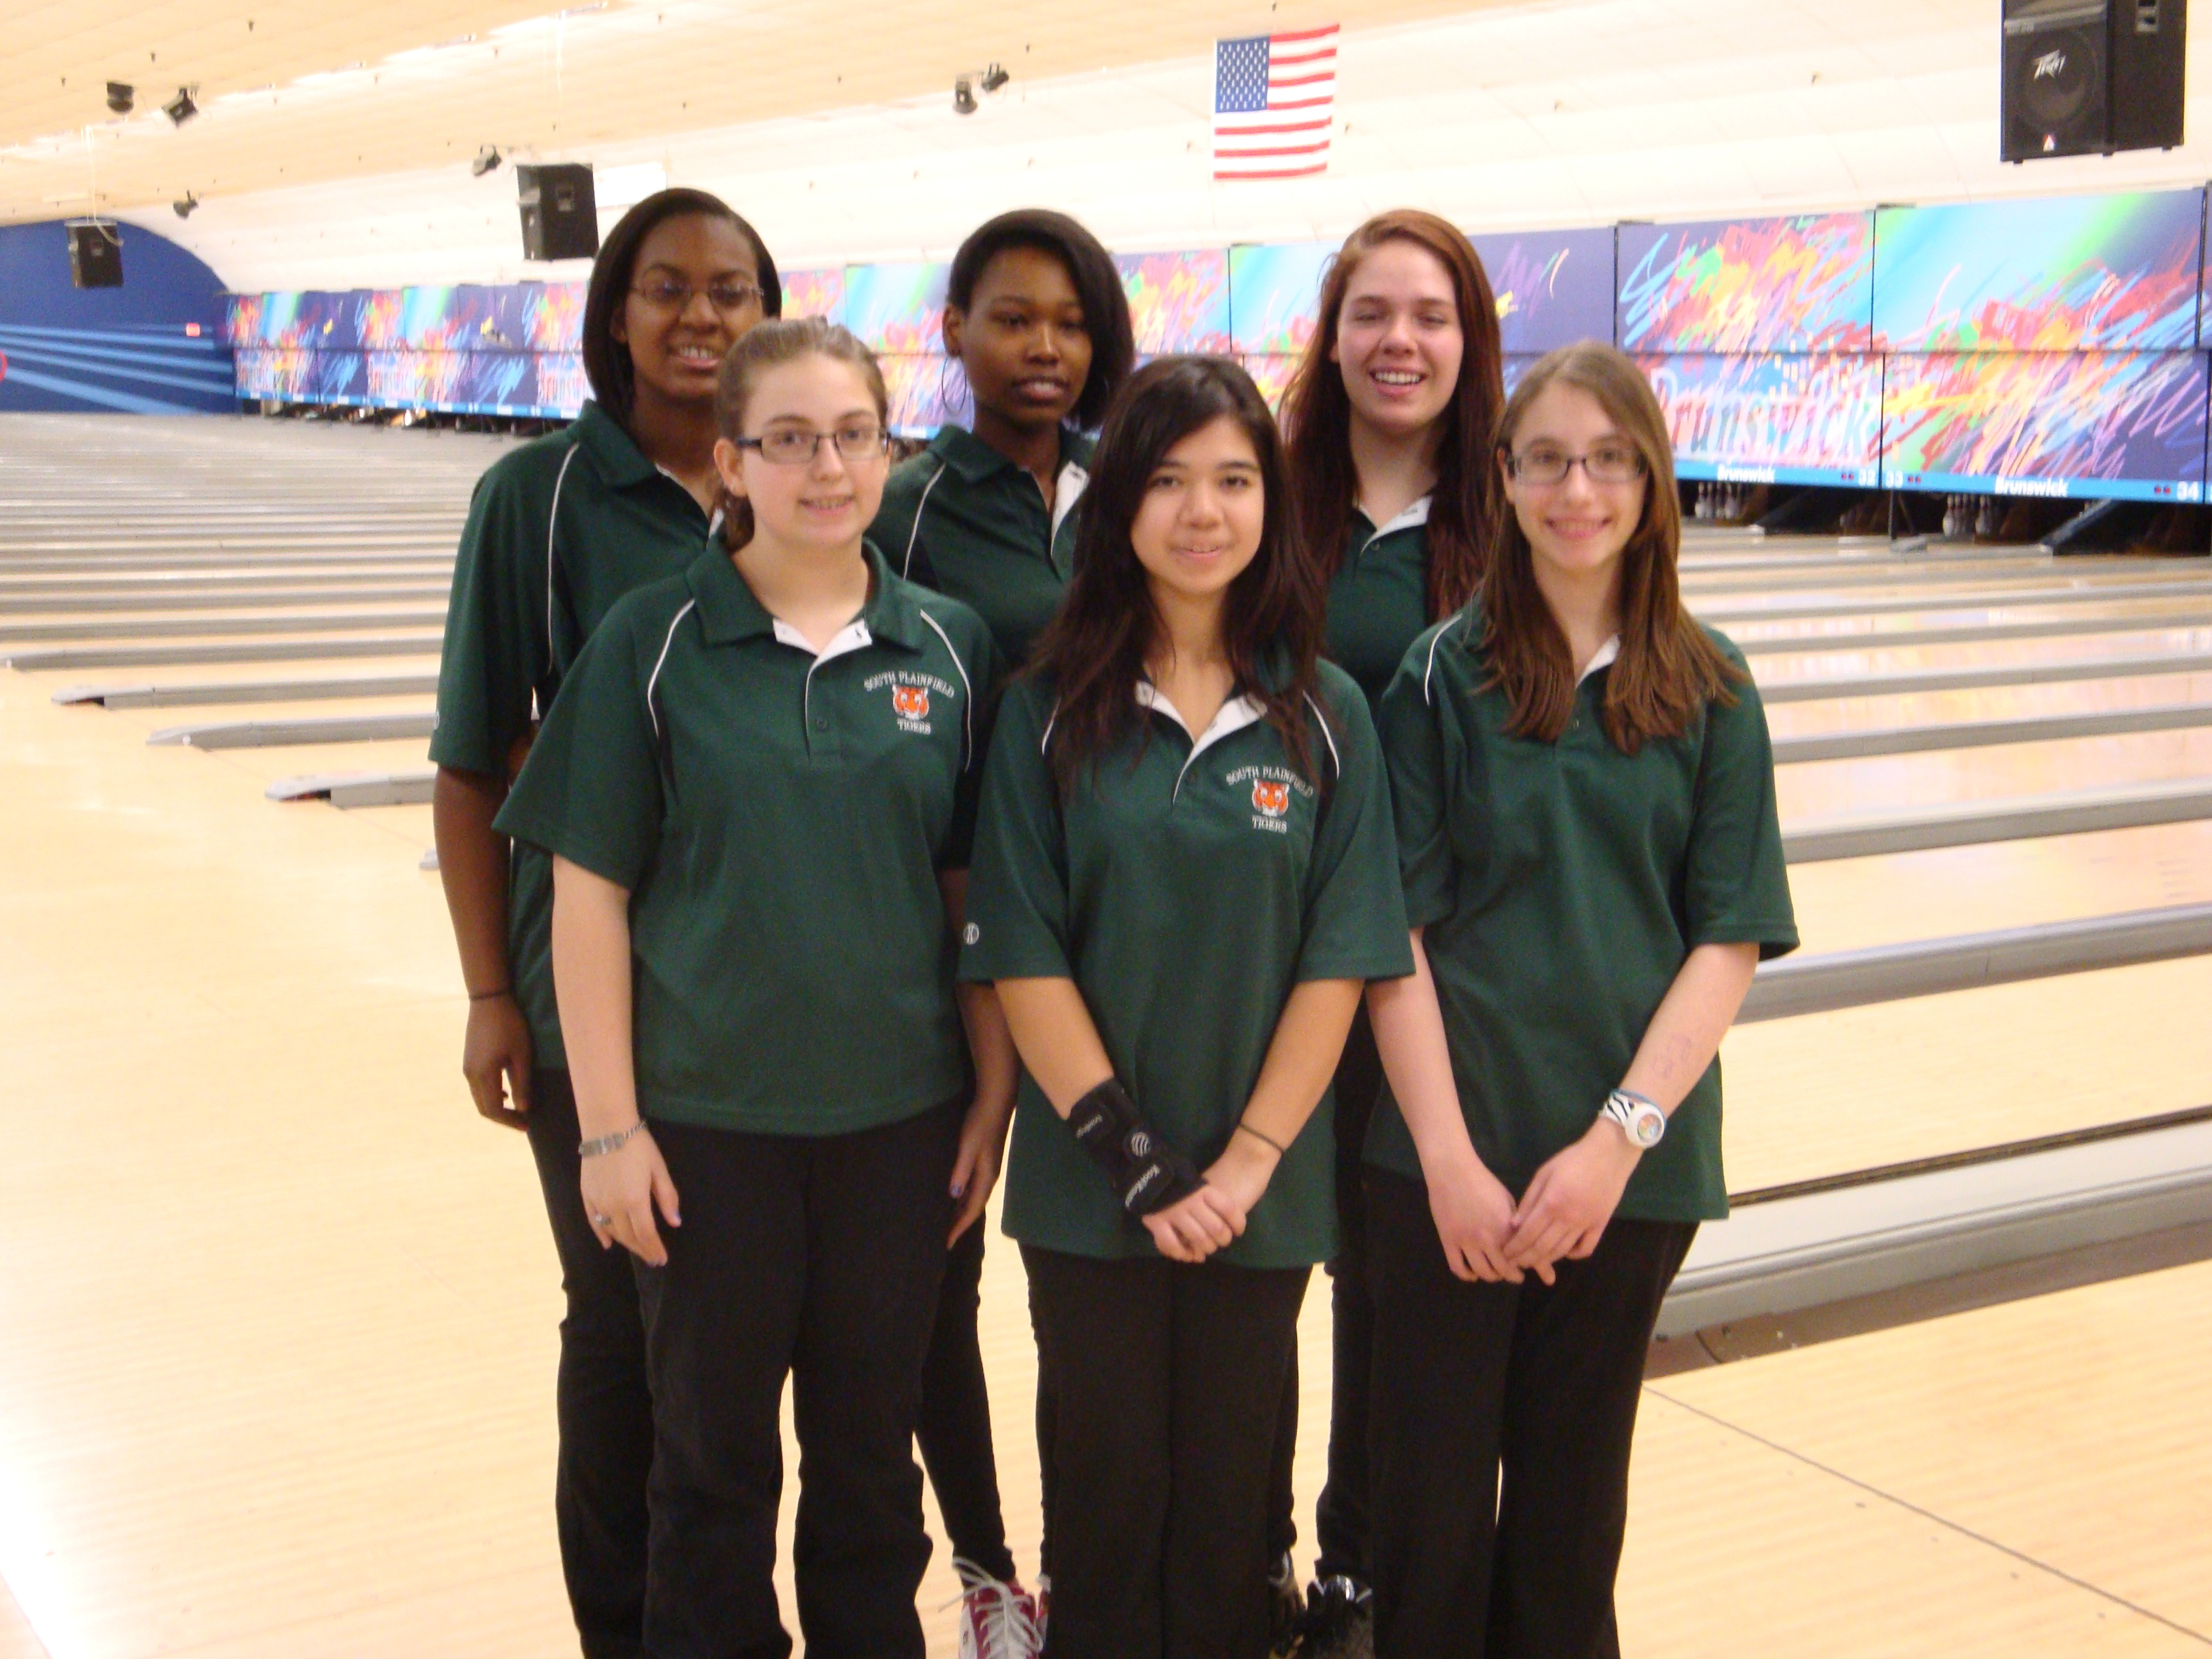 ab9278e3414adc7ffded_Girls_Bowling_Team.JPG